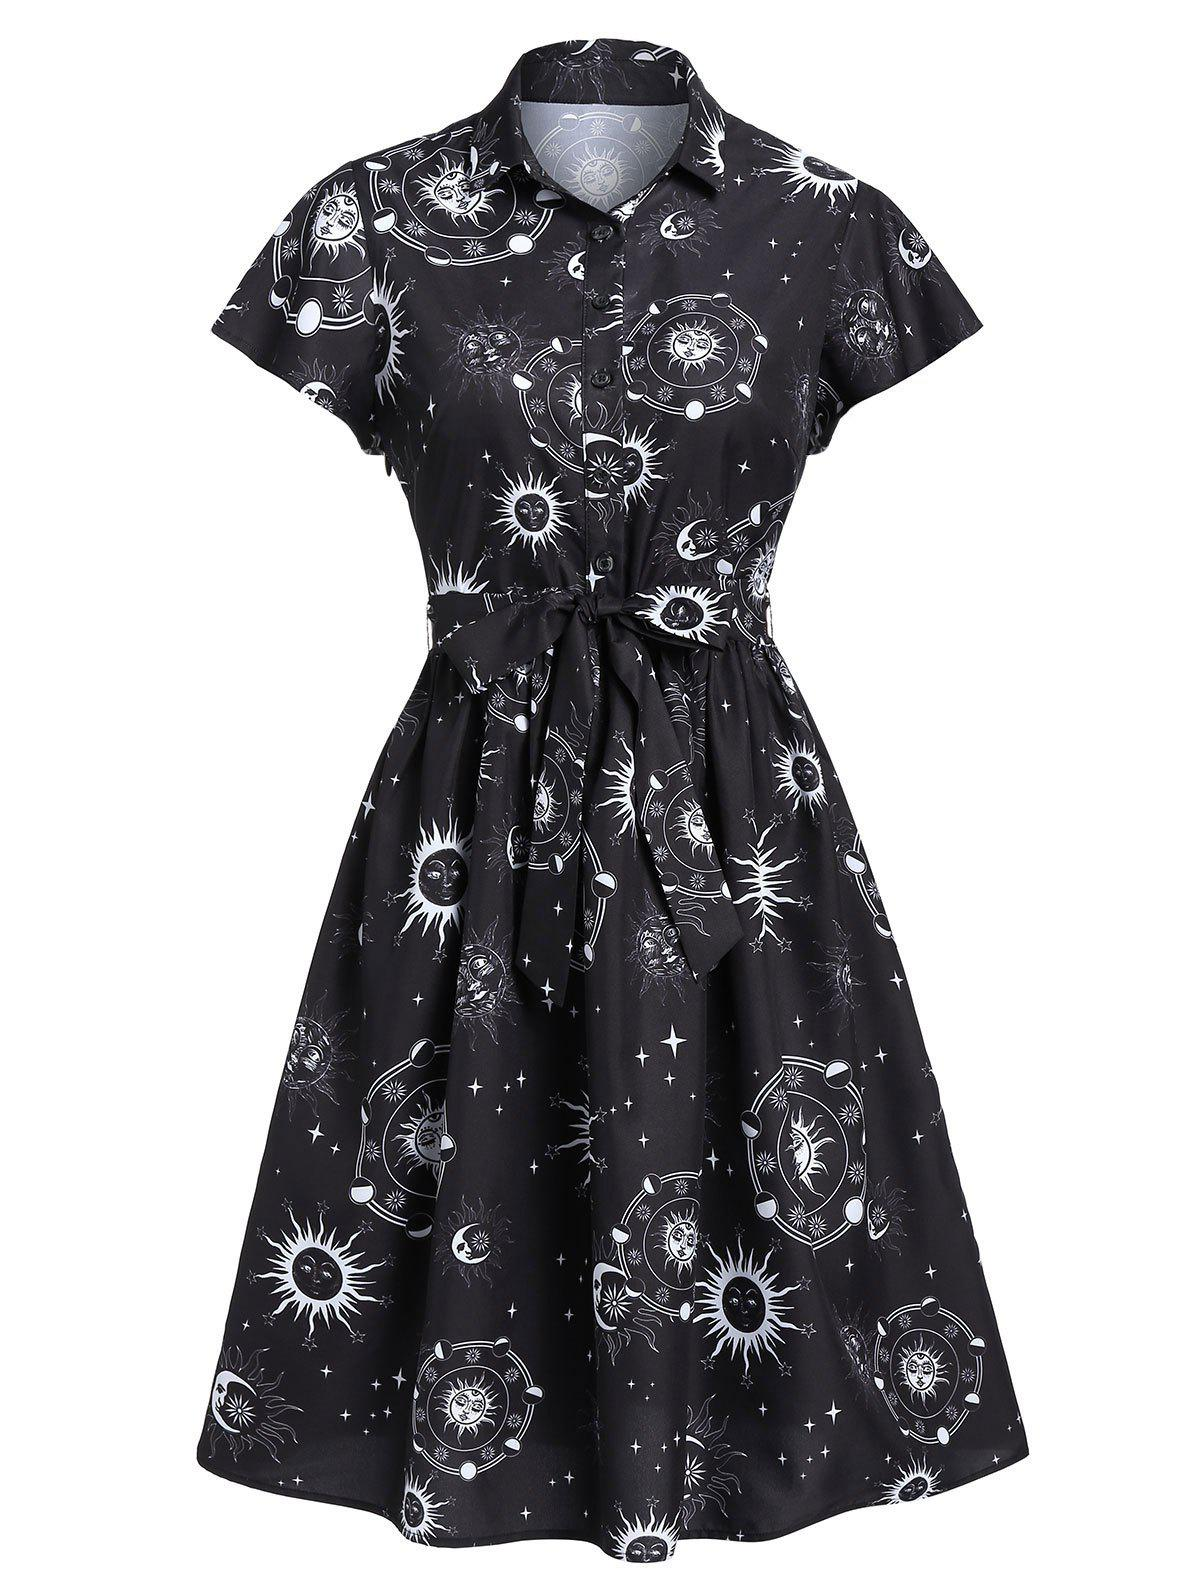 Shops Sun Moon and Star Print Belted Skater Dress